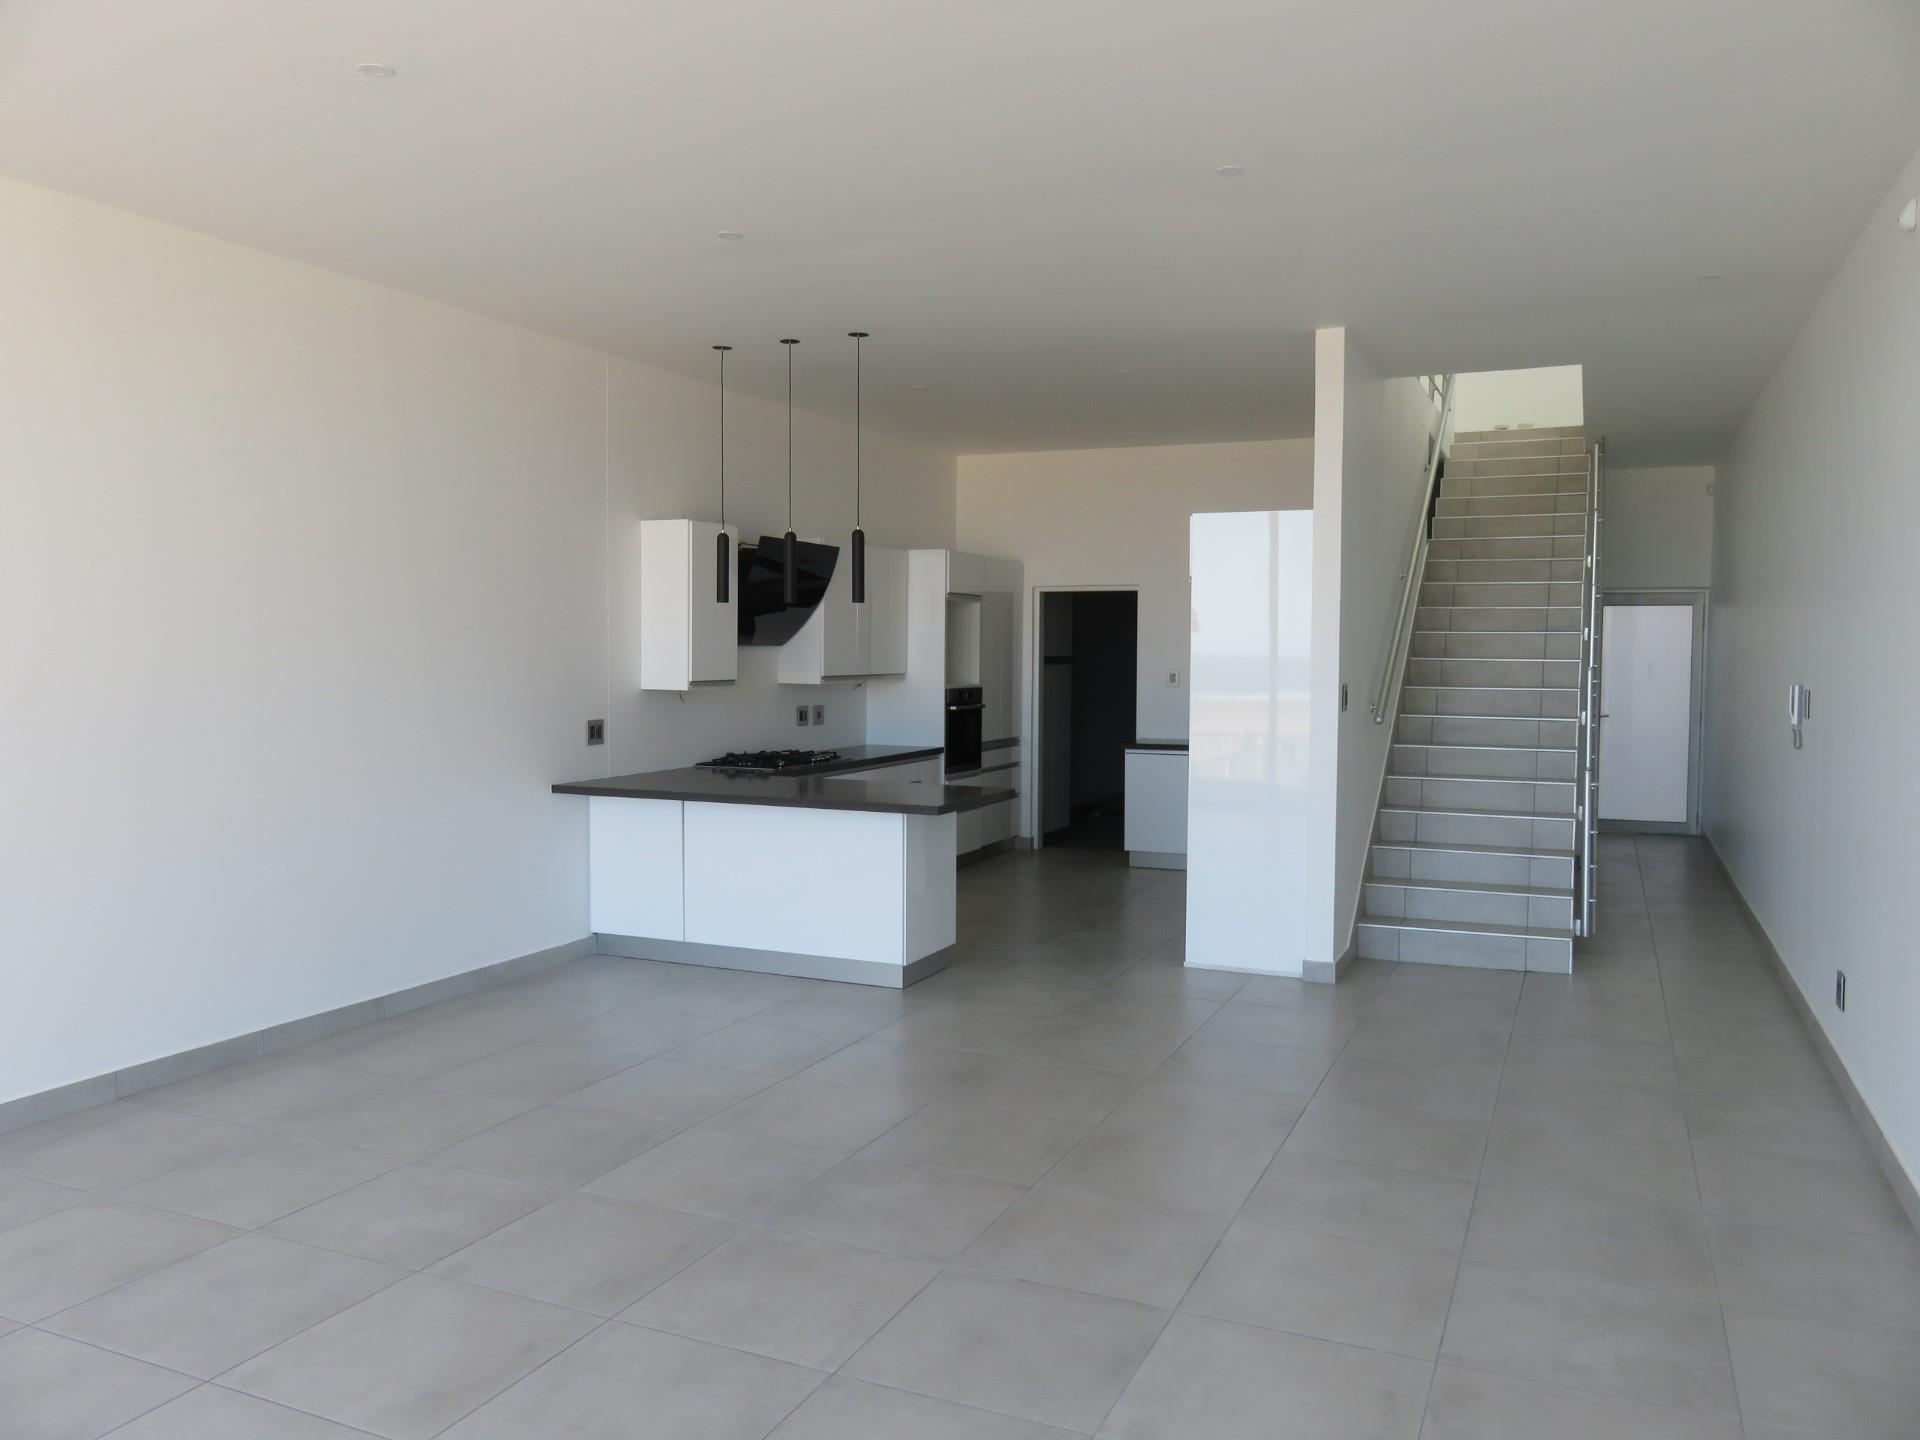 3 Bedroom House For Sale in Long beach